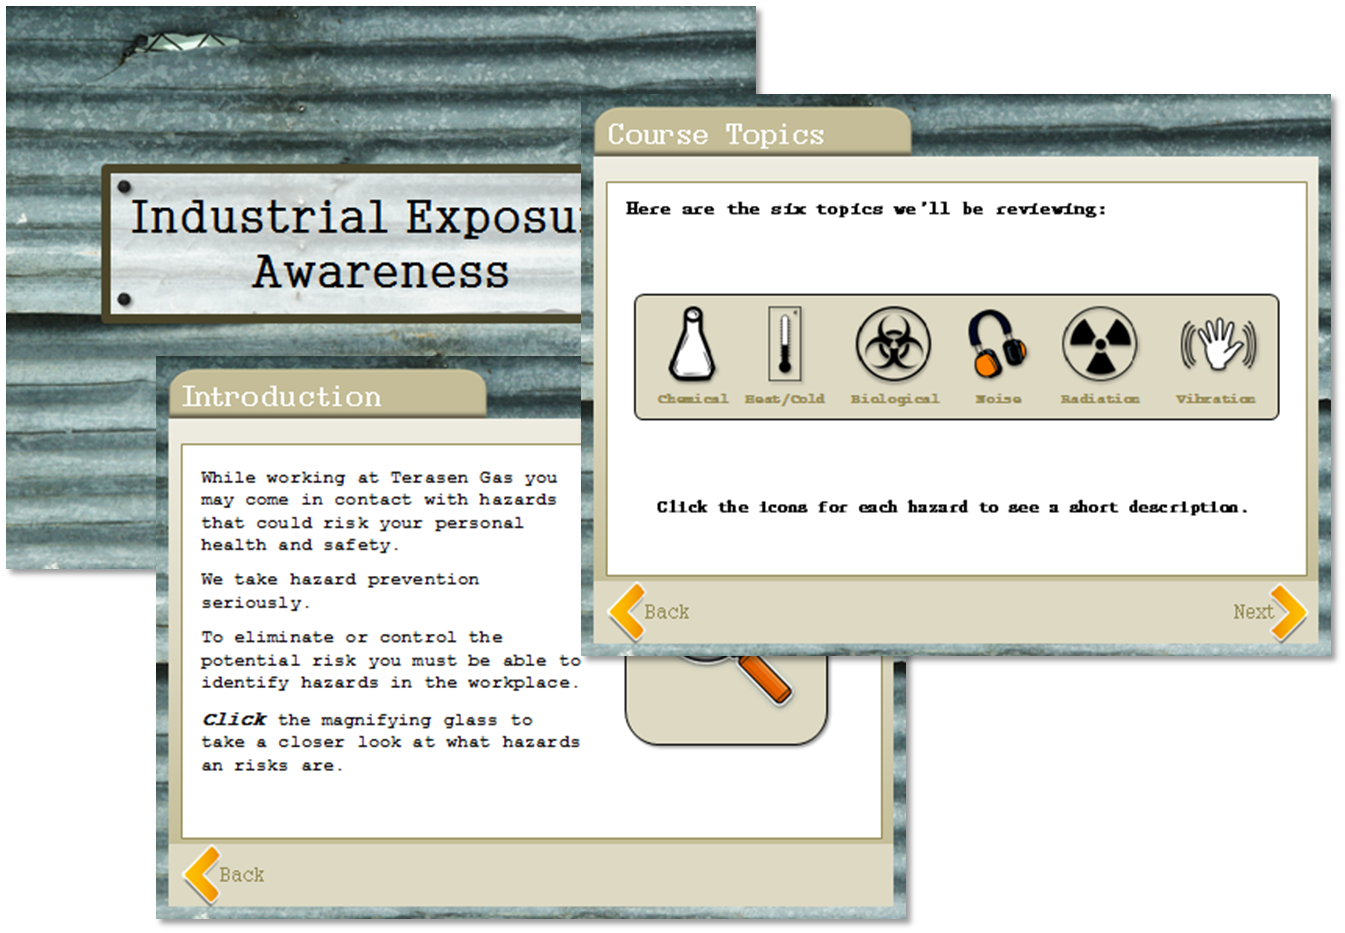 Industrial Exposure Awareness